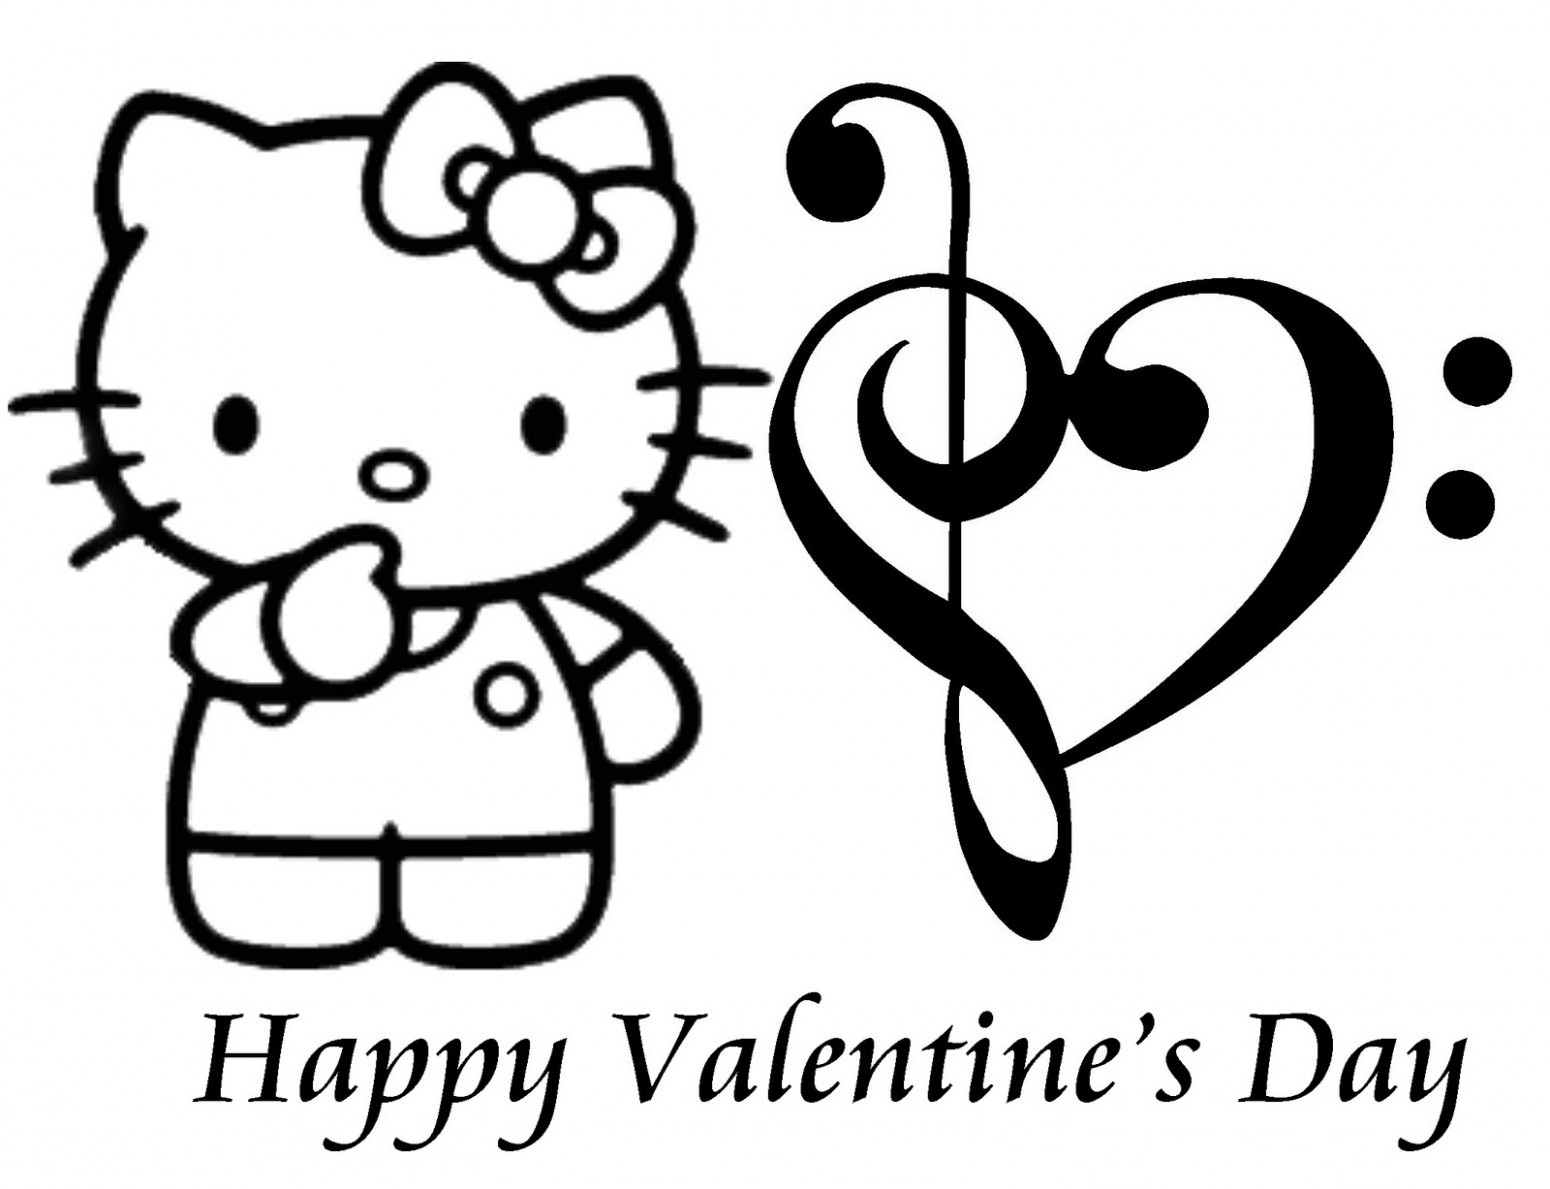 Free valentines day coloring pages to print - Hello Kitty Valentine Coloring Pages